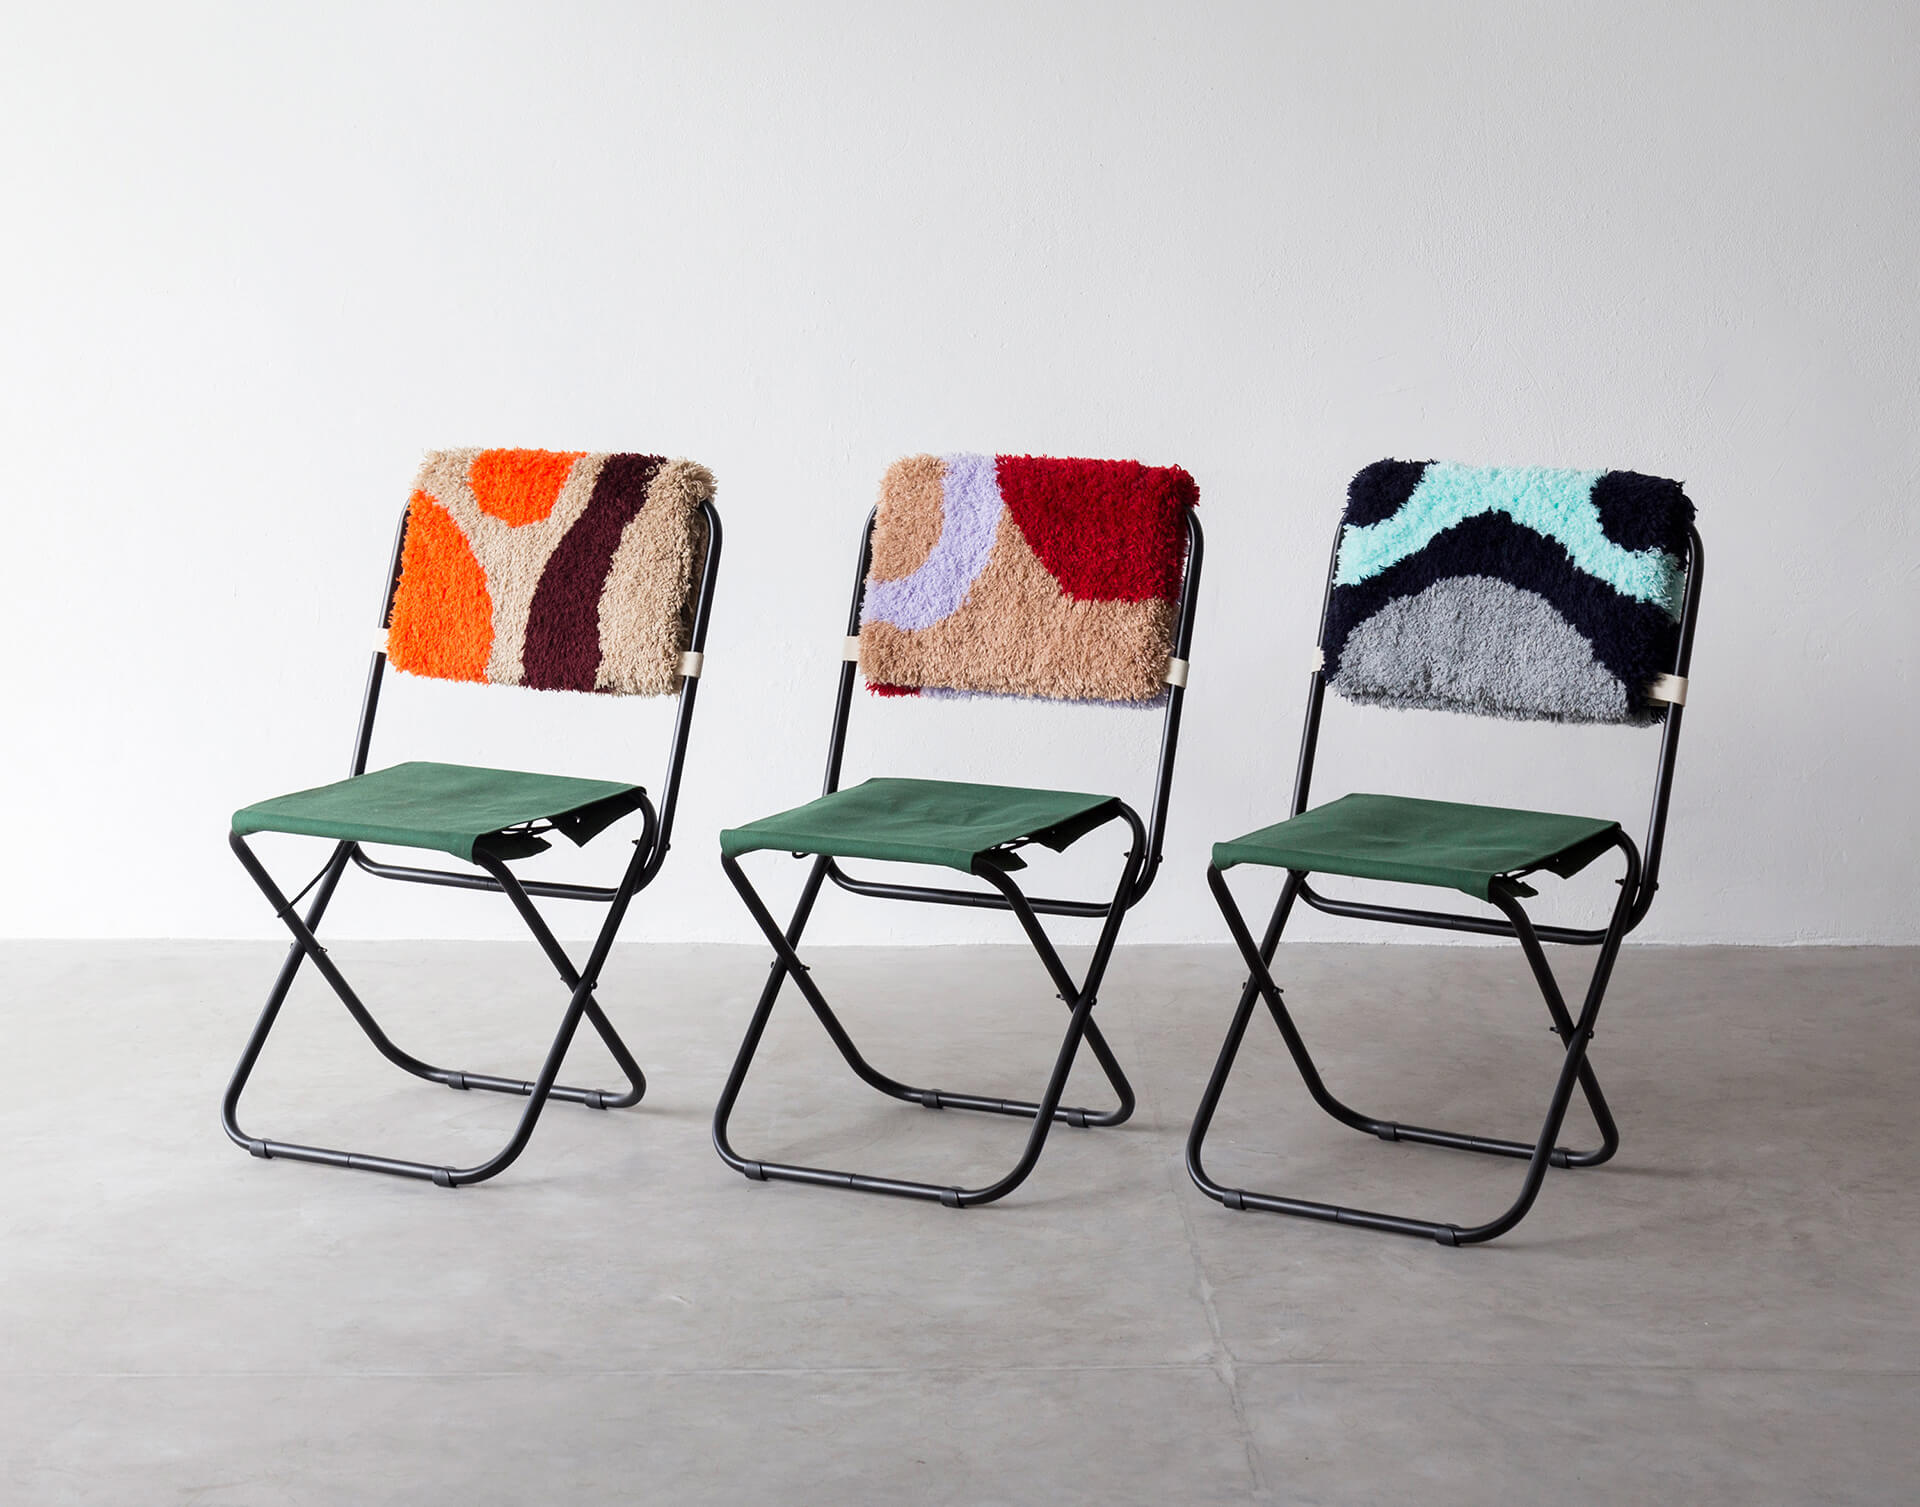 Colourful, tufted chair back covers | Made in Brazil: Curated by Campana Brothers | STIR X Script |STIRworld